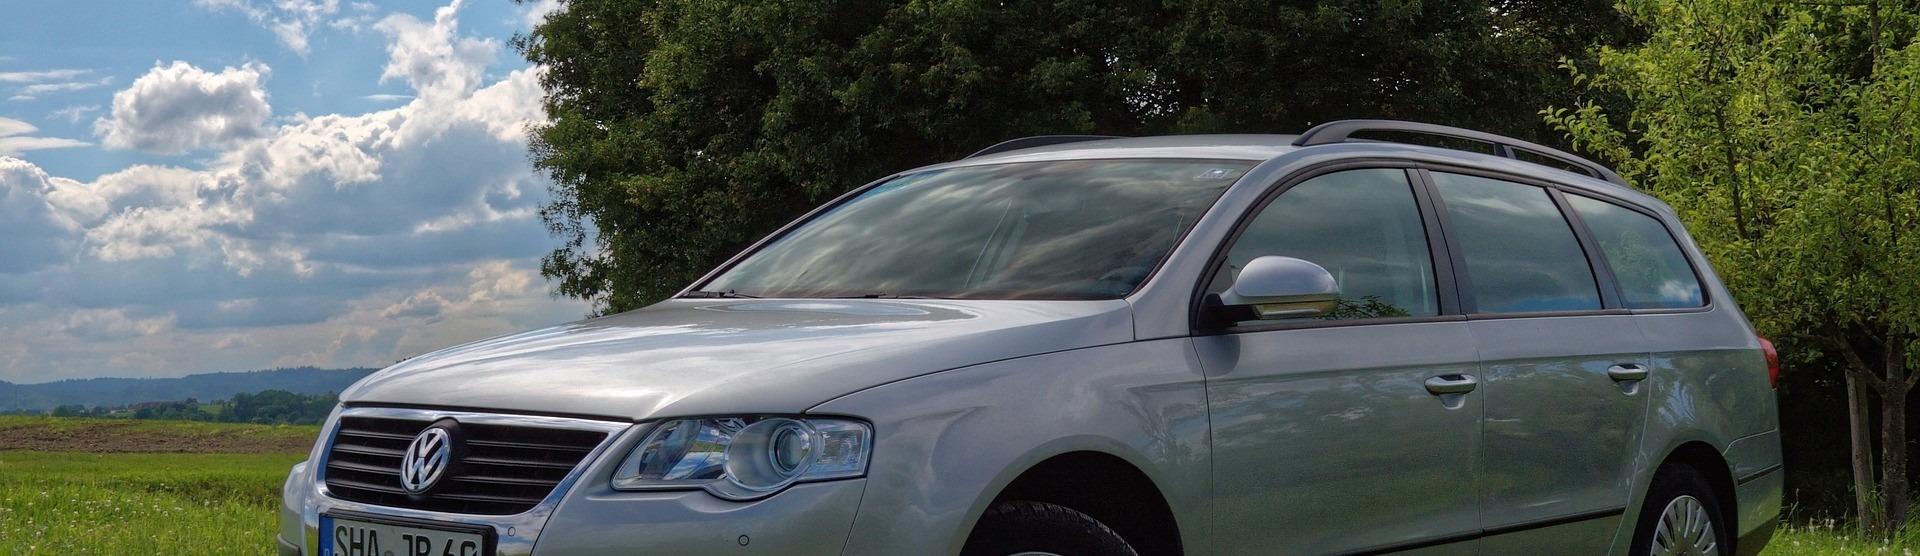 Make a Car Donation in Wyoming - Goodwill Car Donation